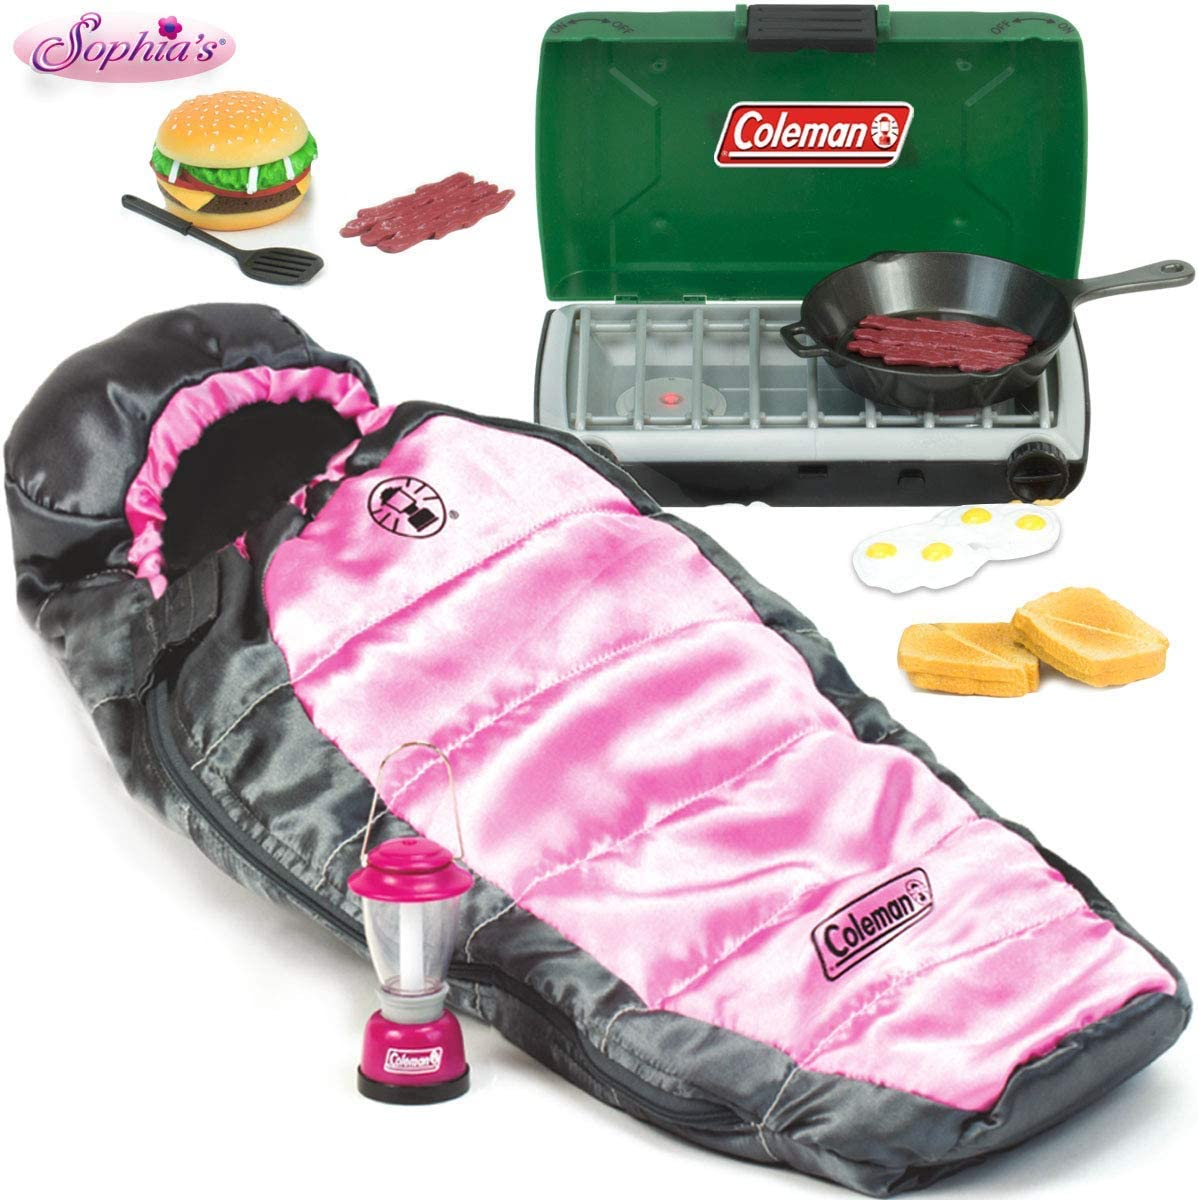 Sophia's Doll 12 Piece Coleman Camp Set for Dolls or Plush Includes Coleman Lantern, Sleeping Bag, Stove and Doll Sized Food